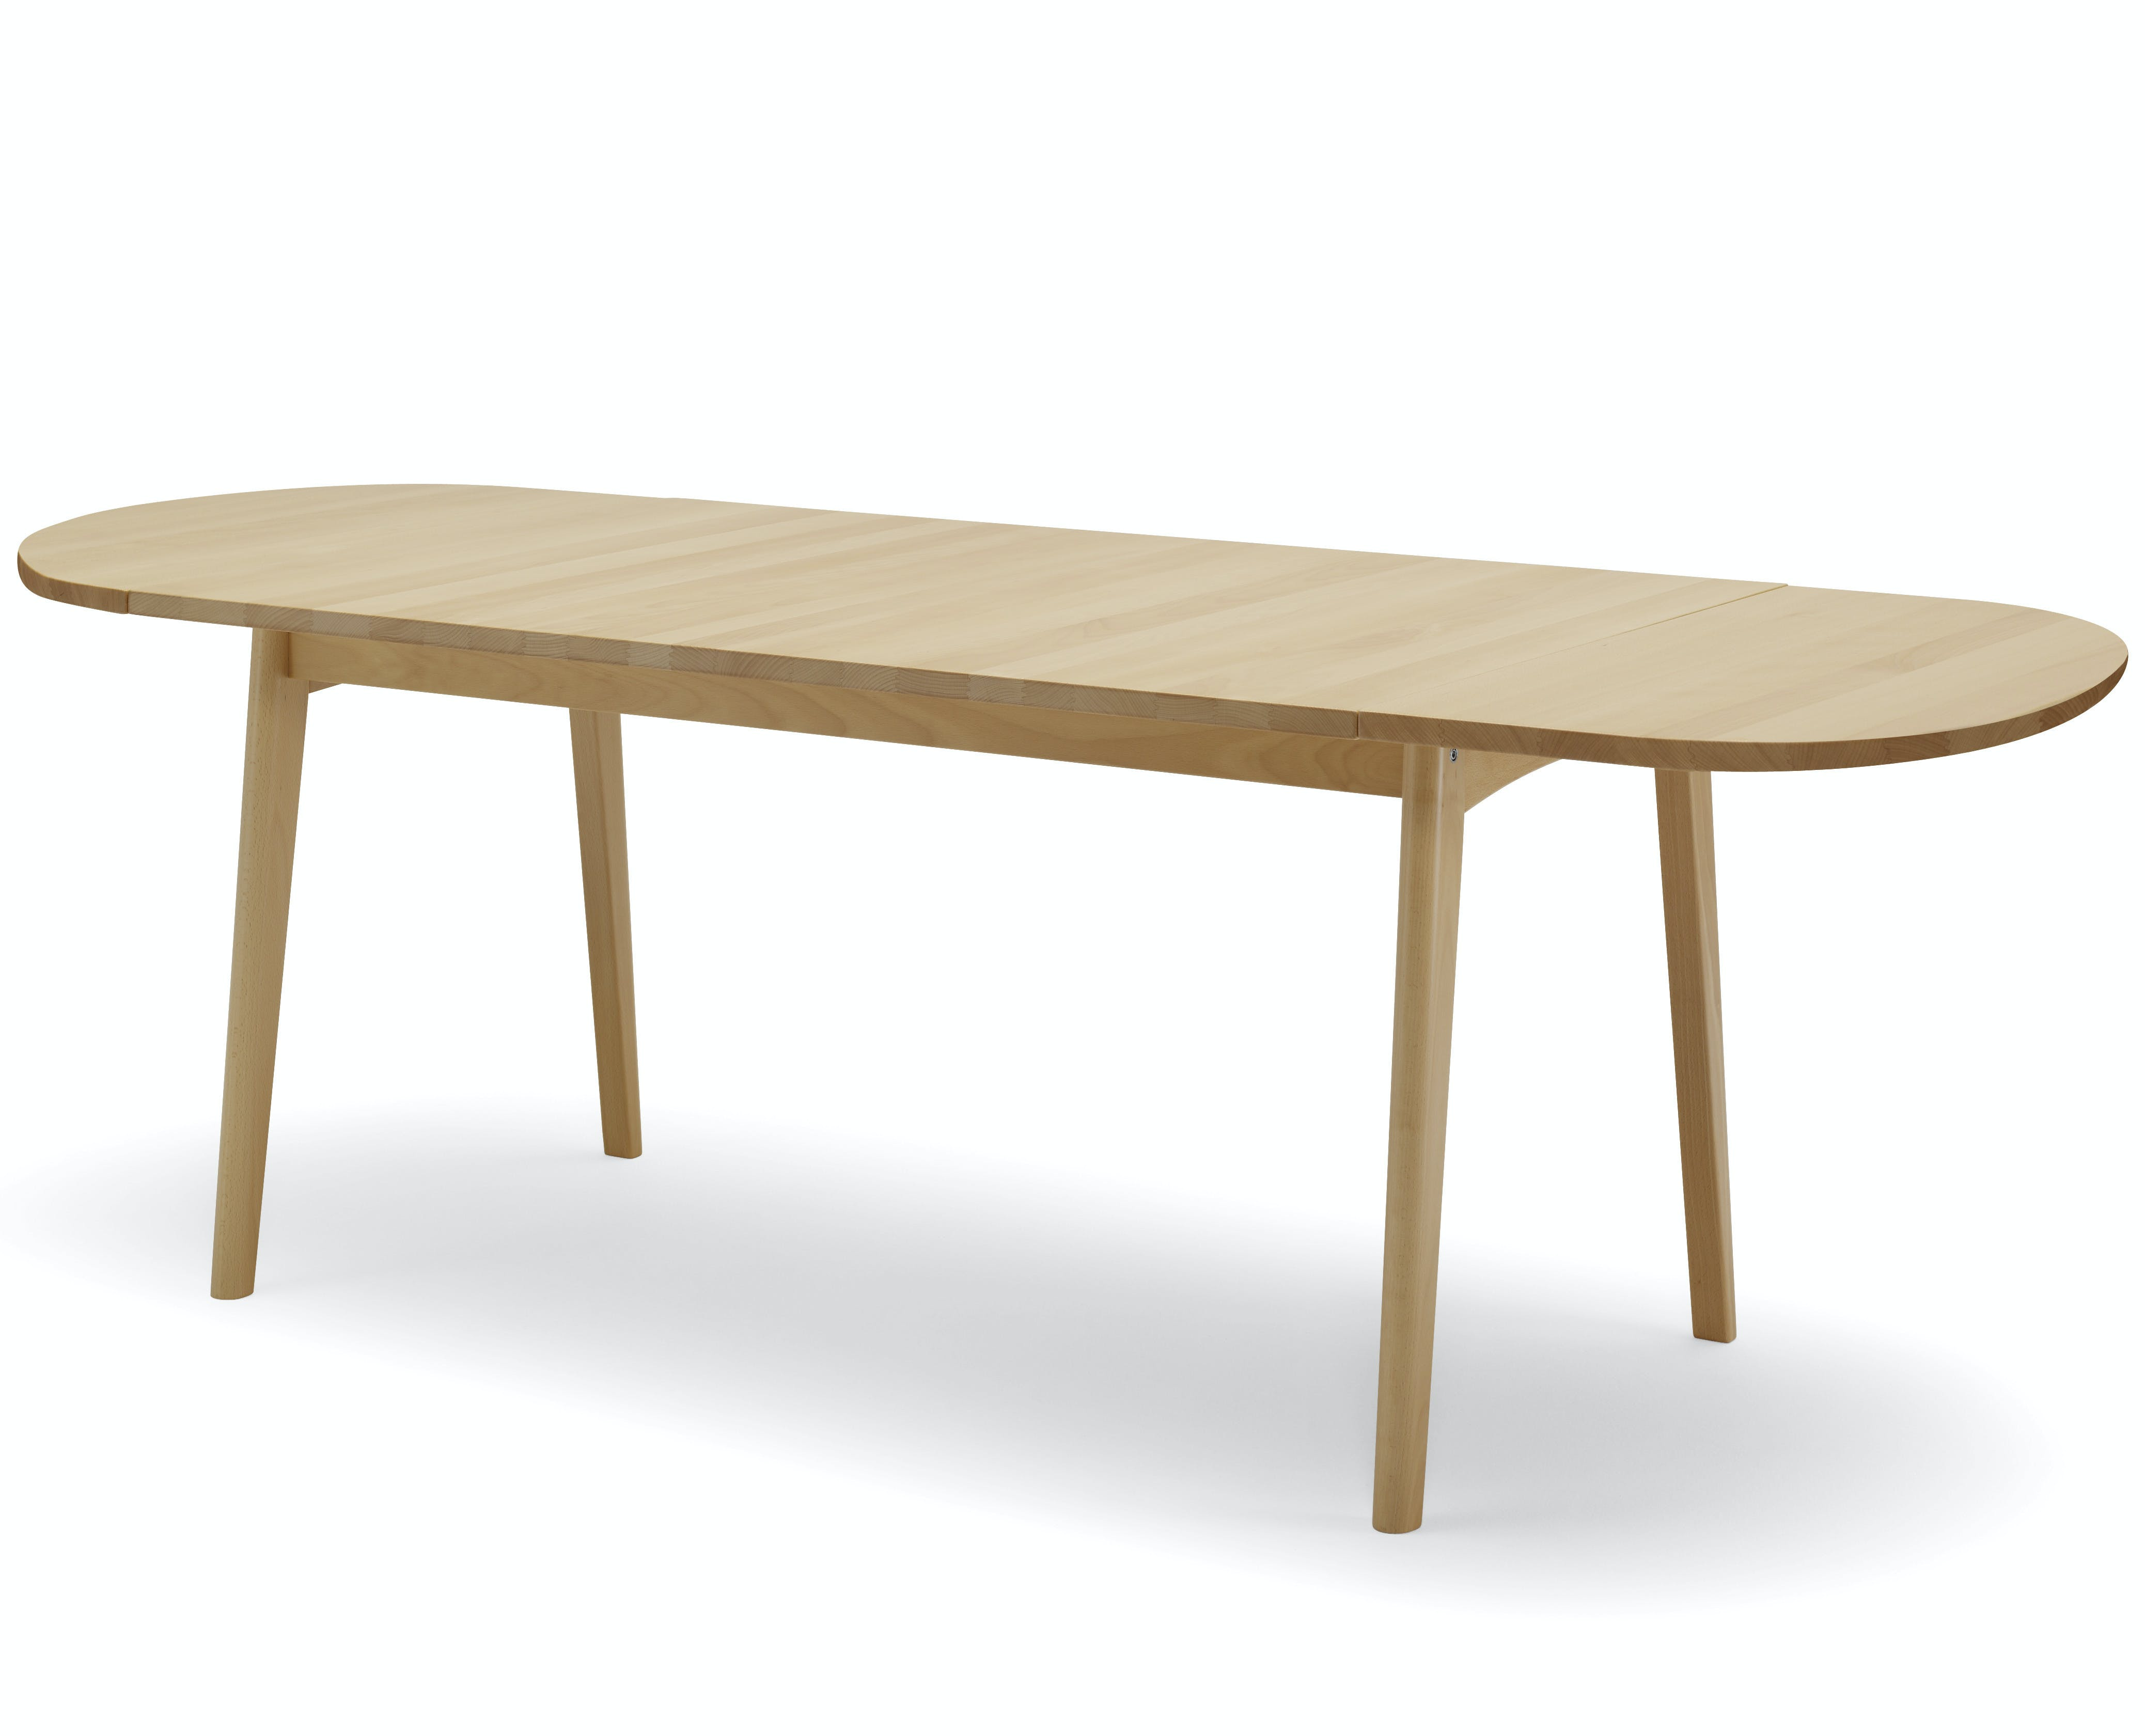 Carl-hansen-son-top-oak-ch006-haute-living